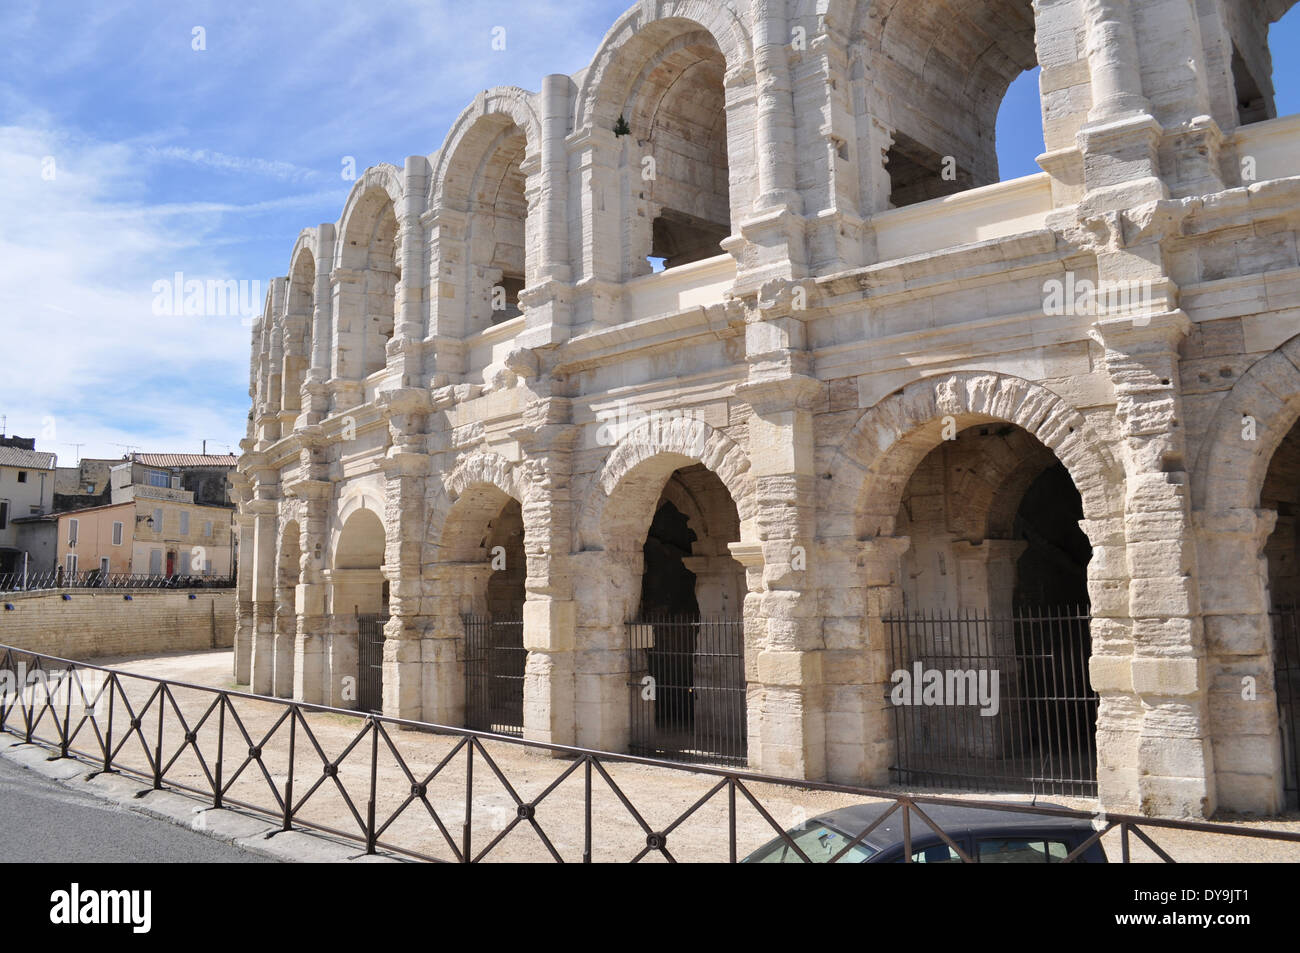 The spruced-up stone-blasted arches of the Roman Amphitheatre in Arles France - Stock Image